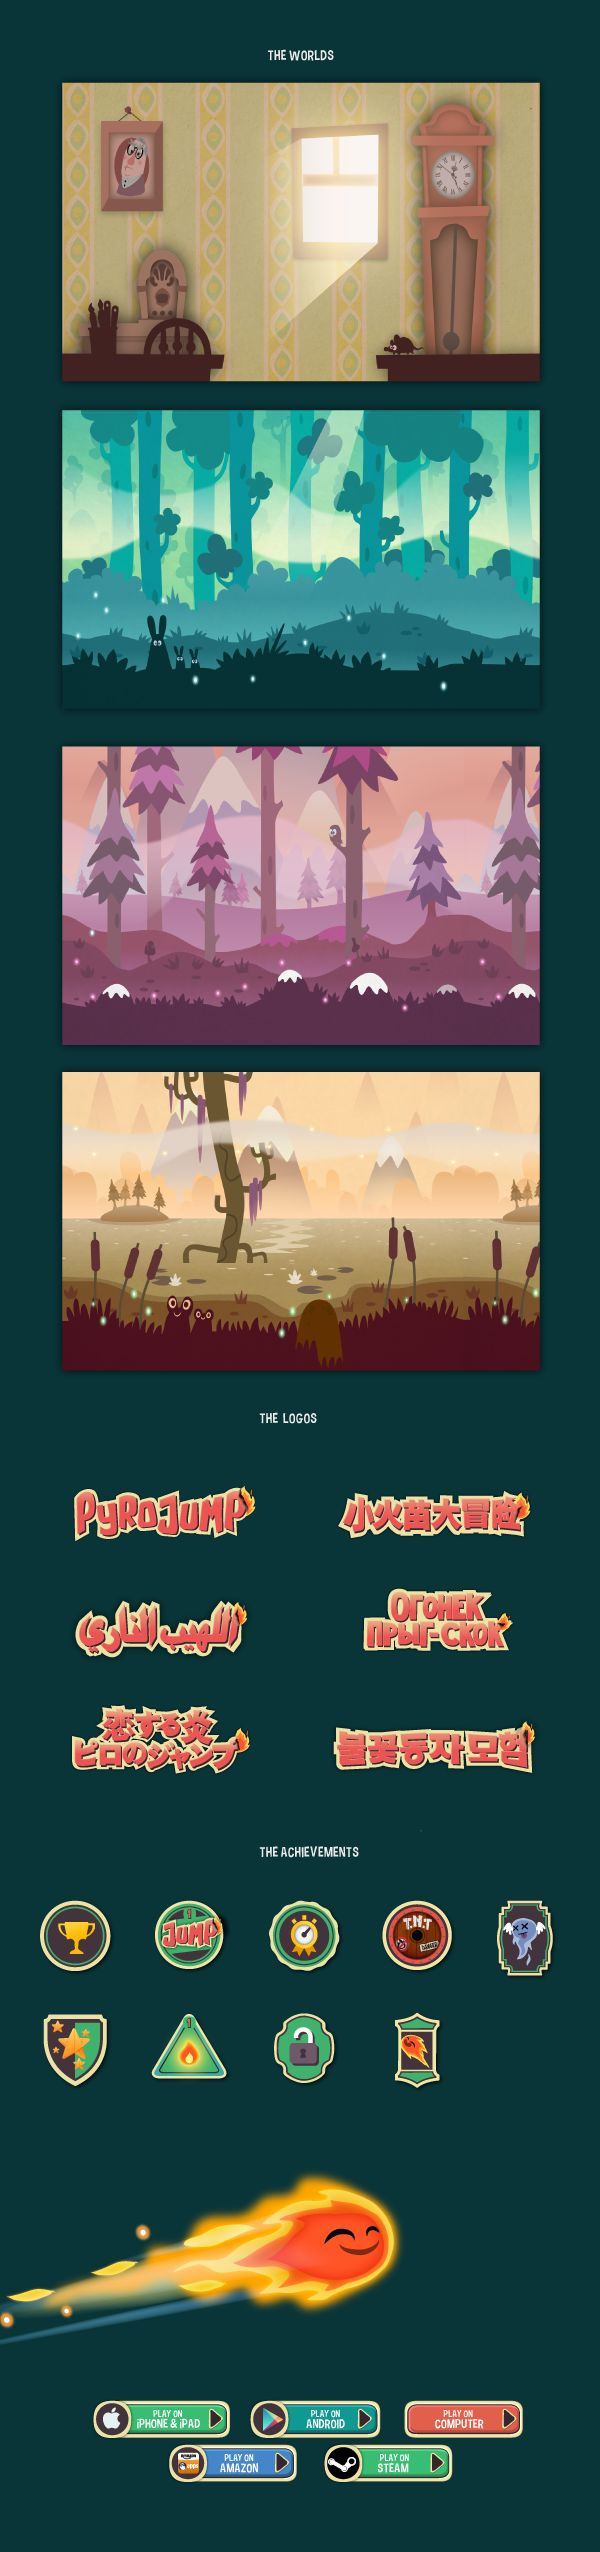 pyro jump - mobile video game by pinpin team